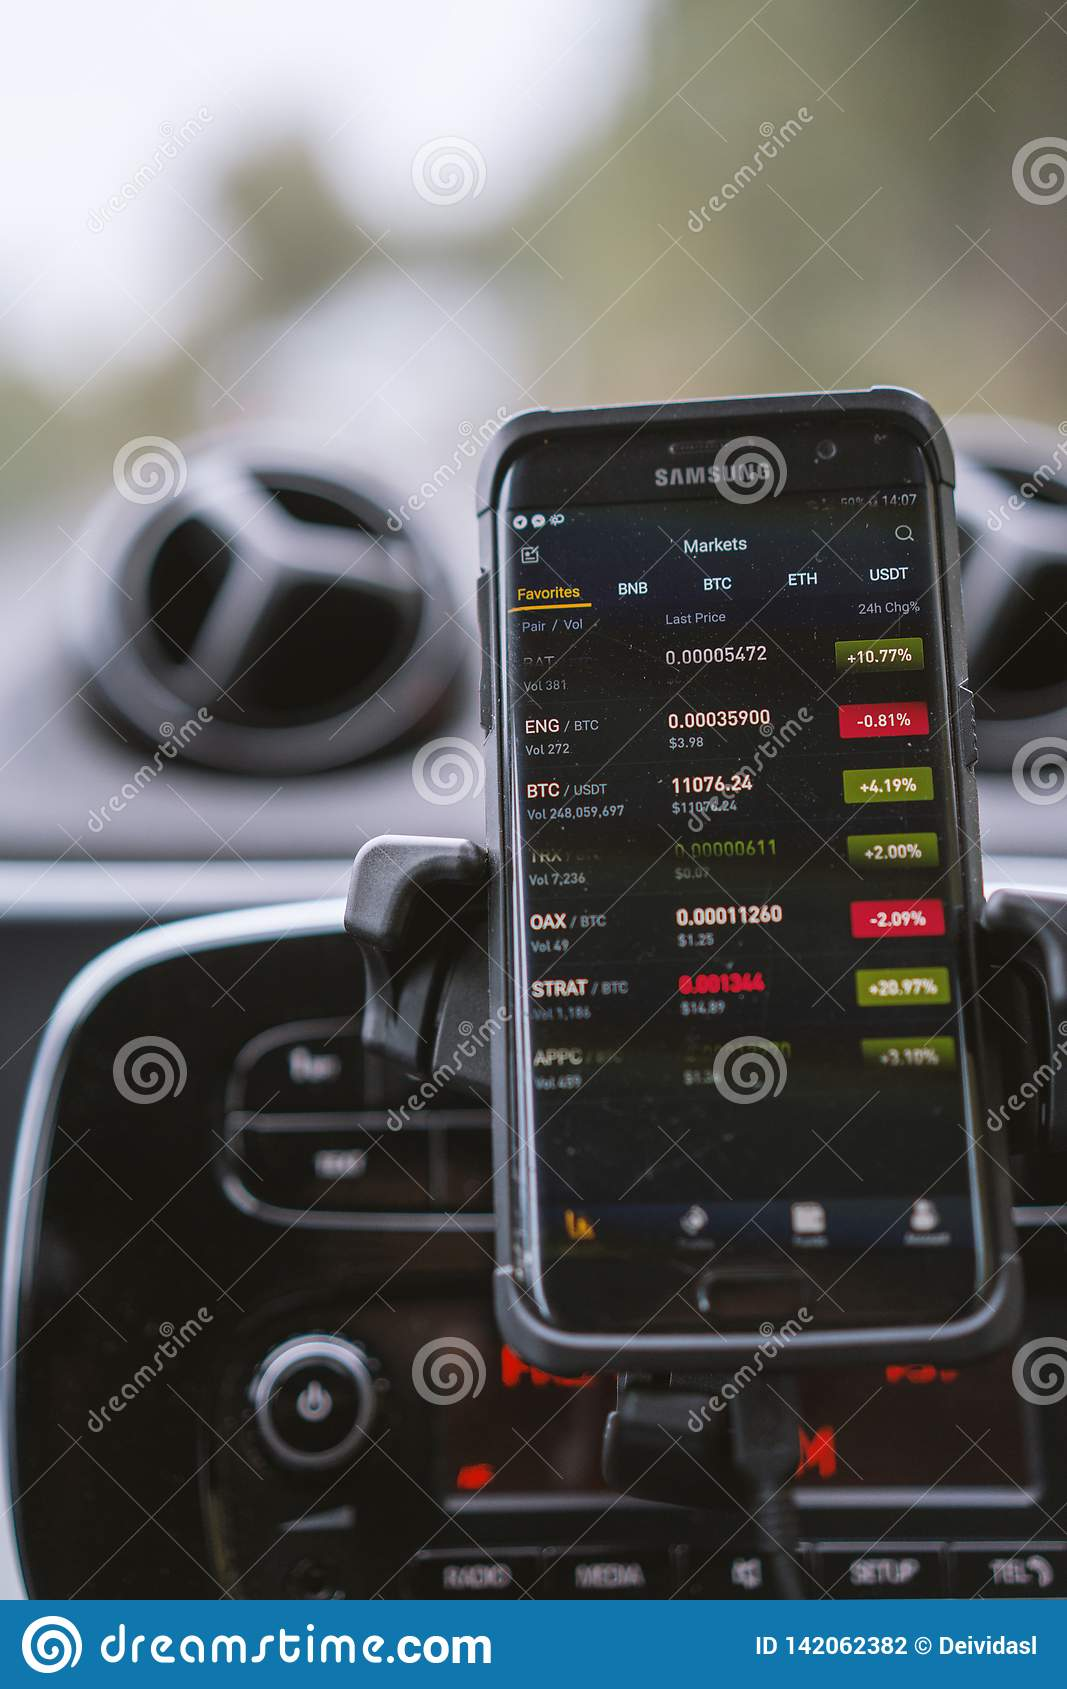 Phone With Crypto Currencies Trading App In A Car Editorial Photography Image Of Trading Business 142062382